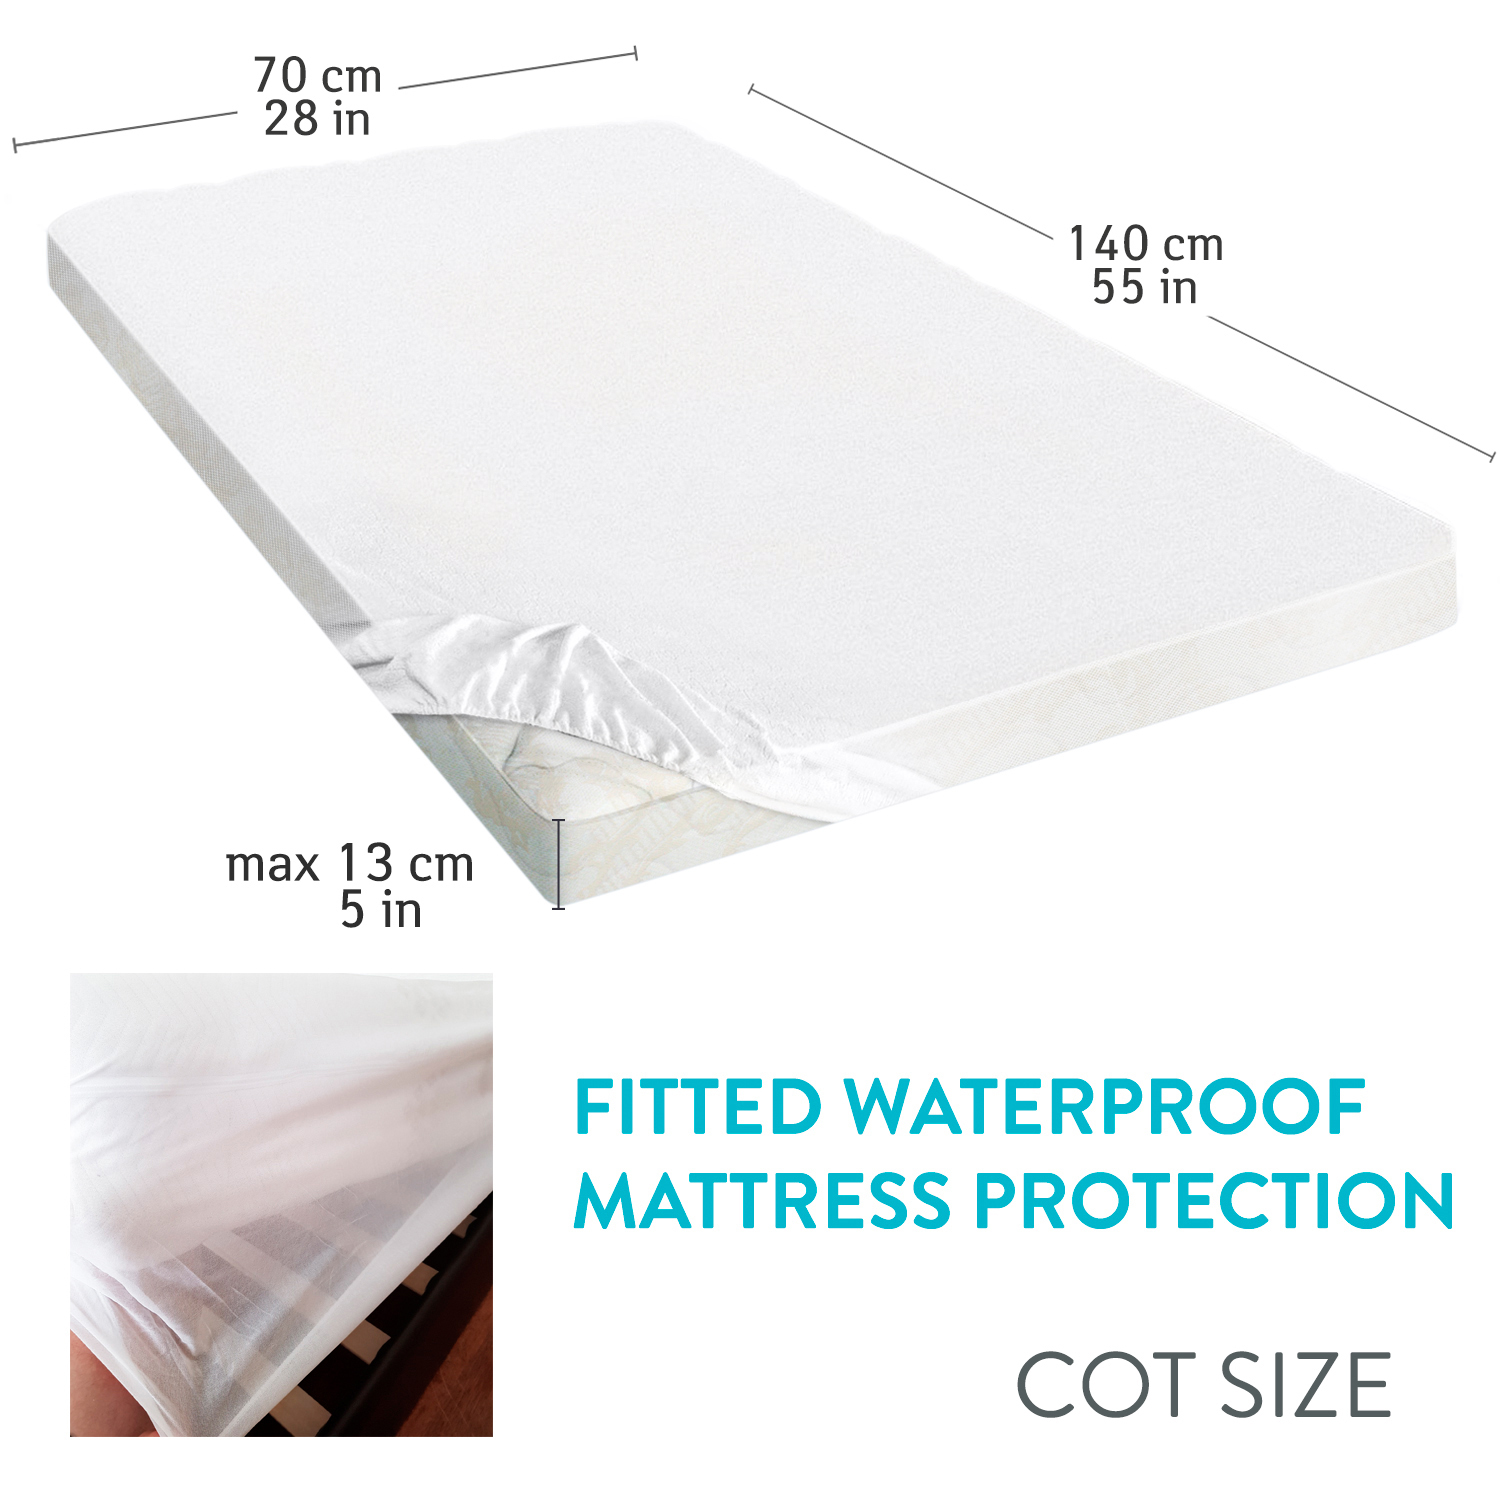 Tatkraft Lad Waterproof Fitted Mattress Protector For Cot